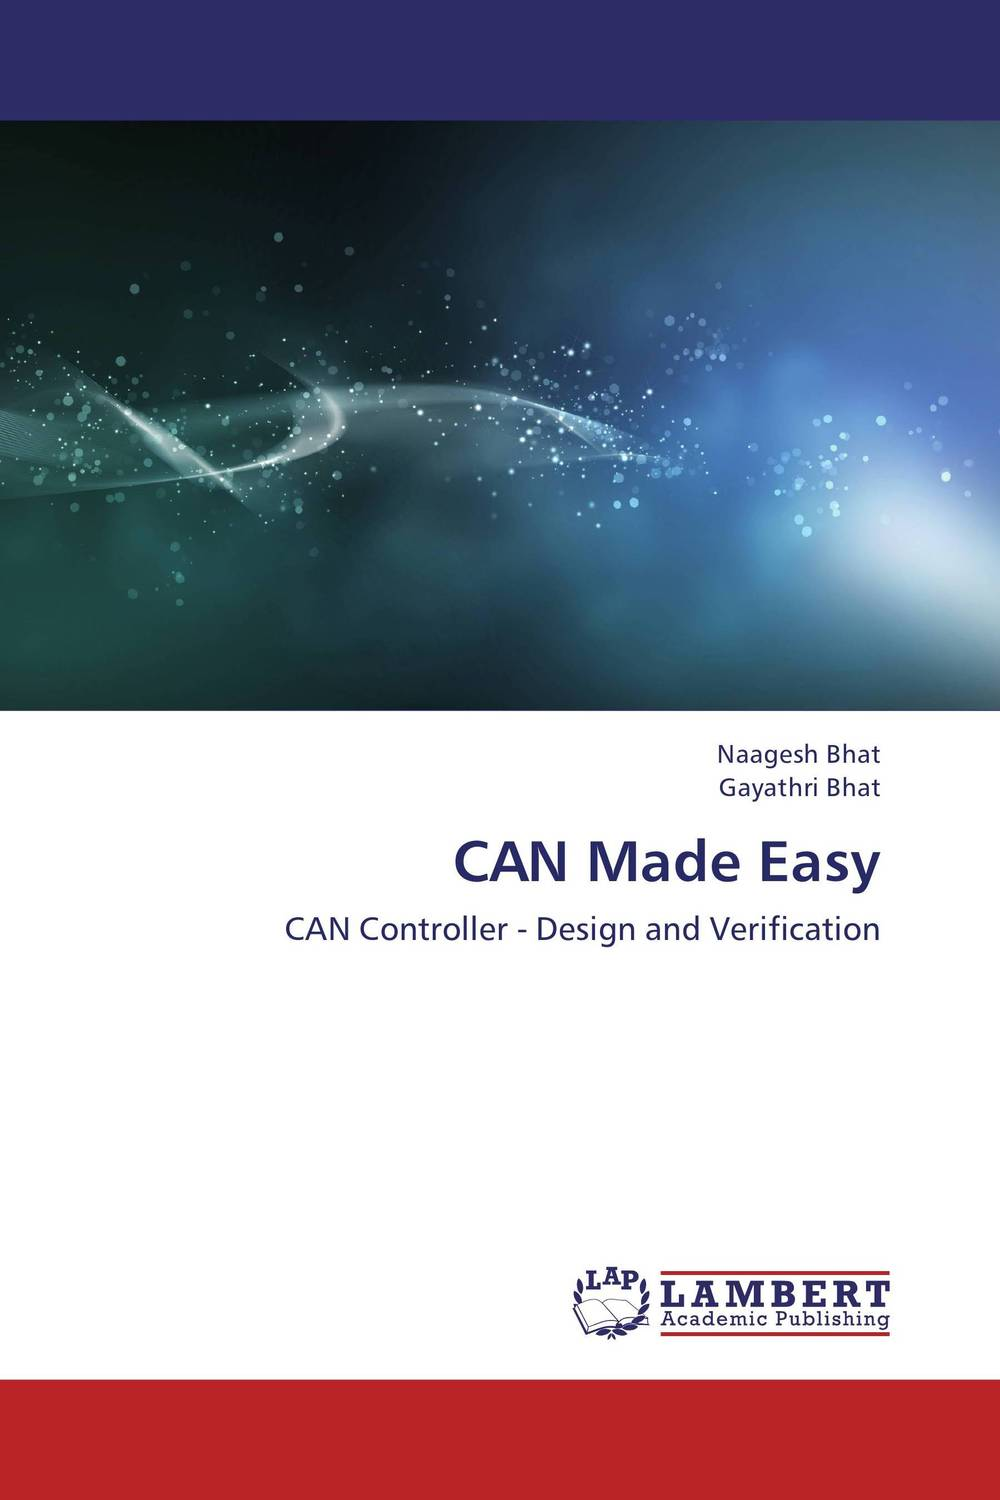 CAN Made Easy